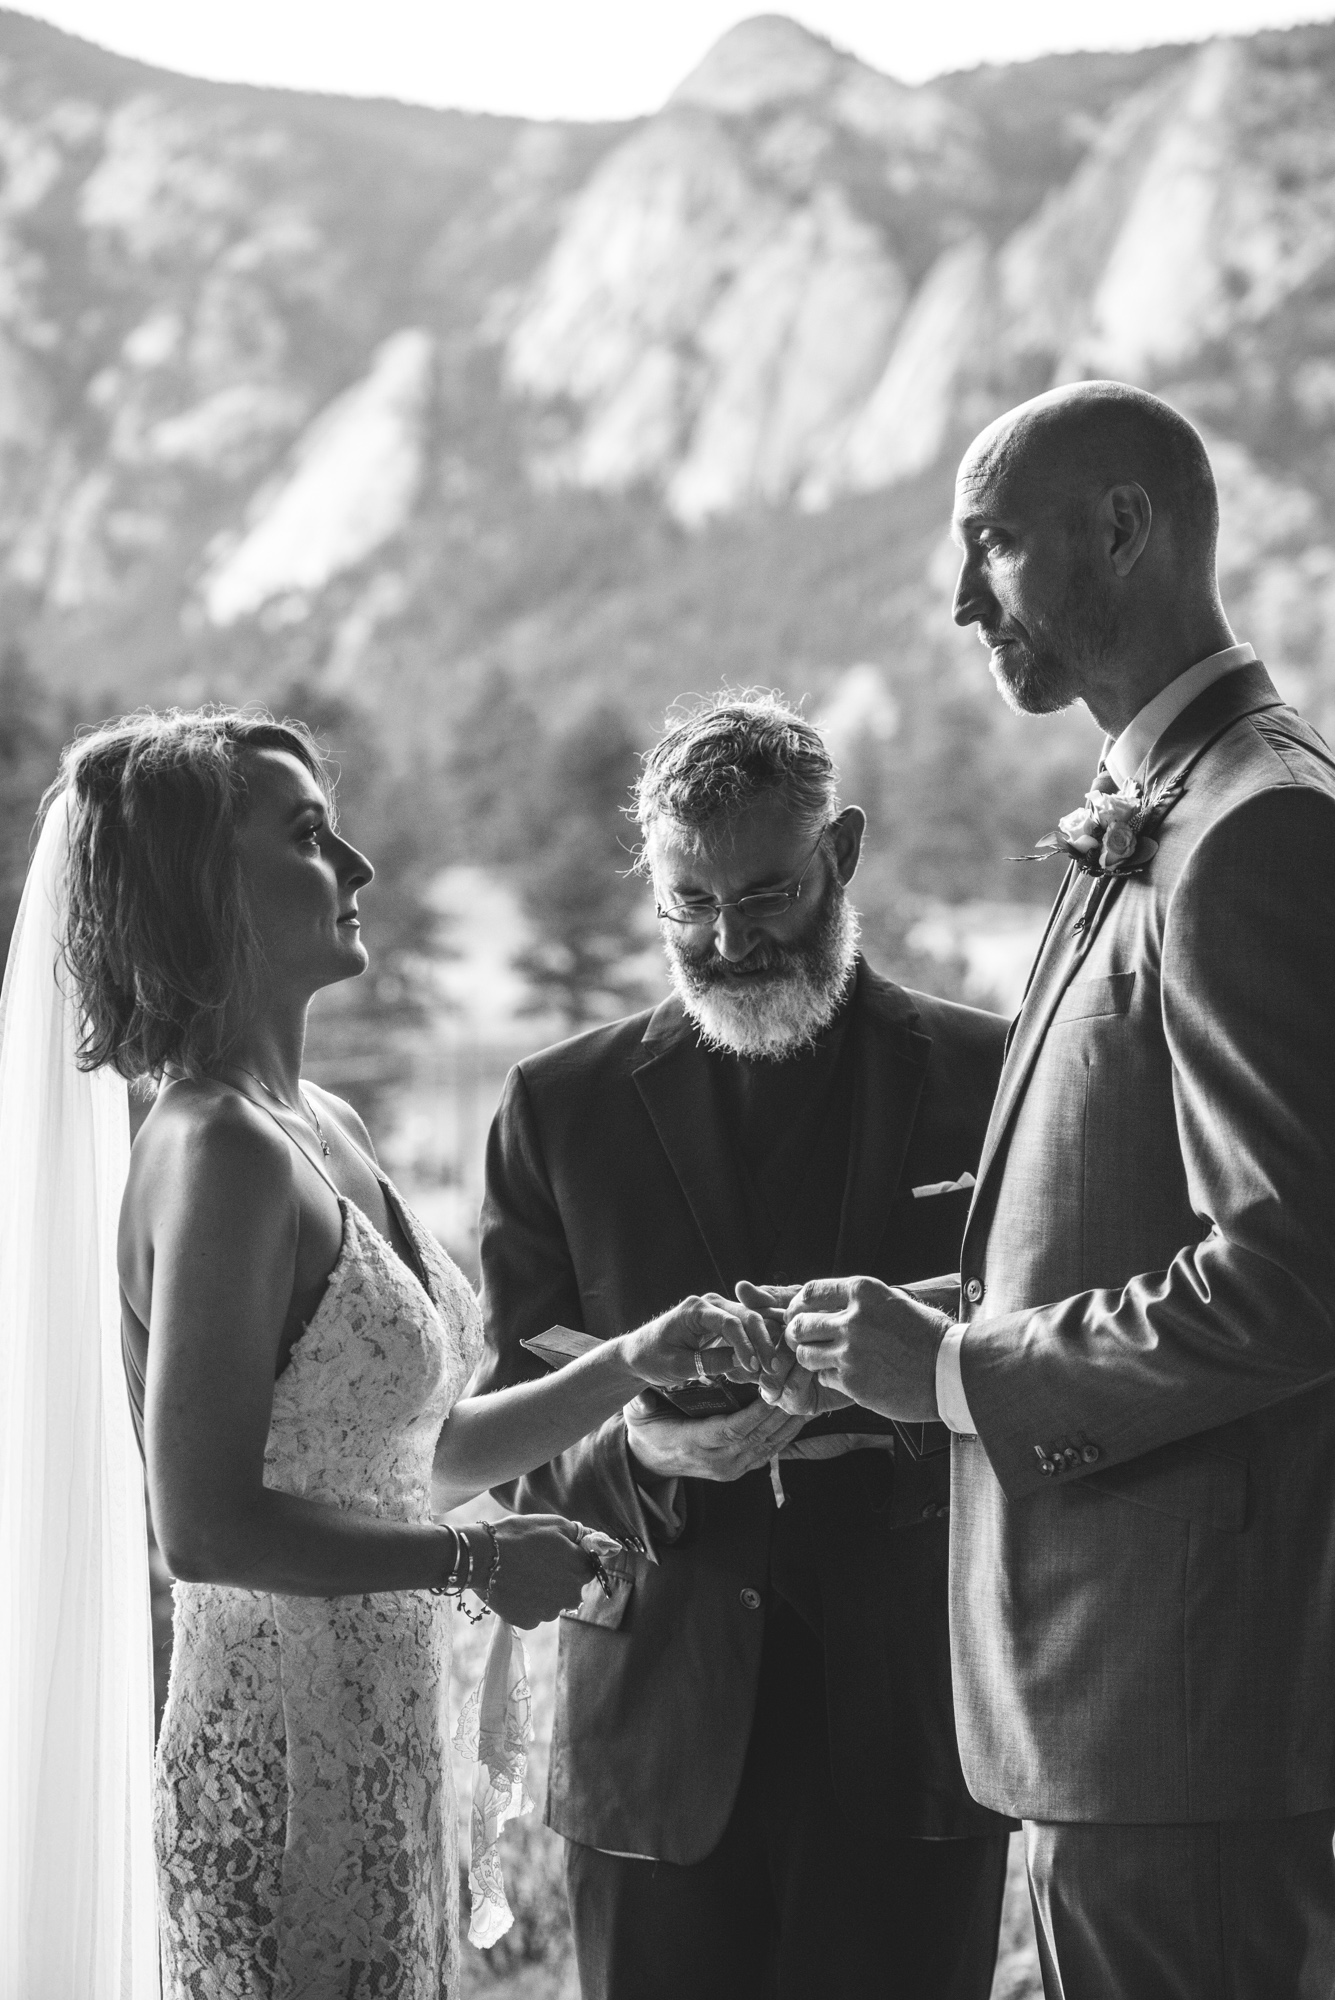 Close up black and white photo of a wedding ceremony in which the bride and groom look lovingly at one another while the groom puts the ring on the bride's finger.